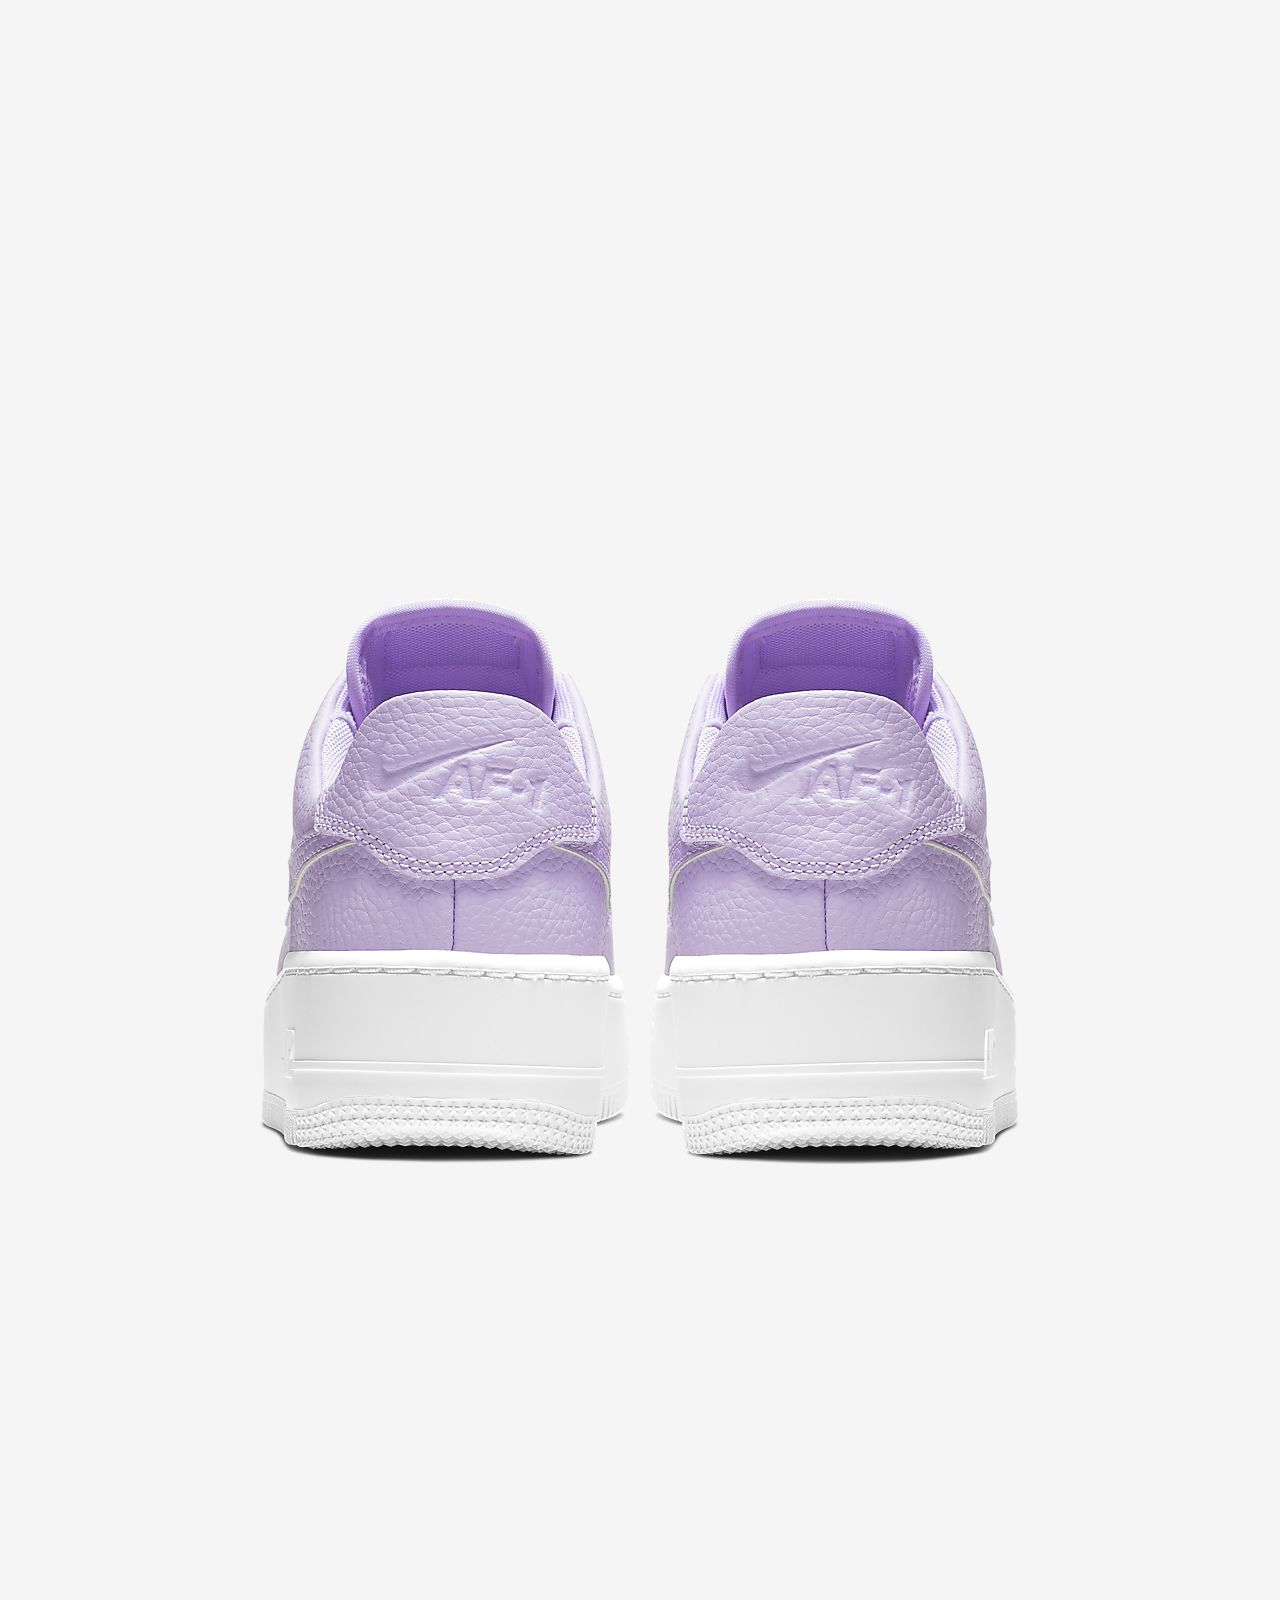 competitive price 46c66 a7230 ... Nike Air Force 1 Sage Low Women s Shoe